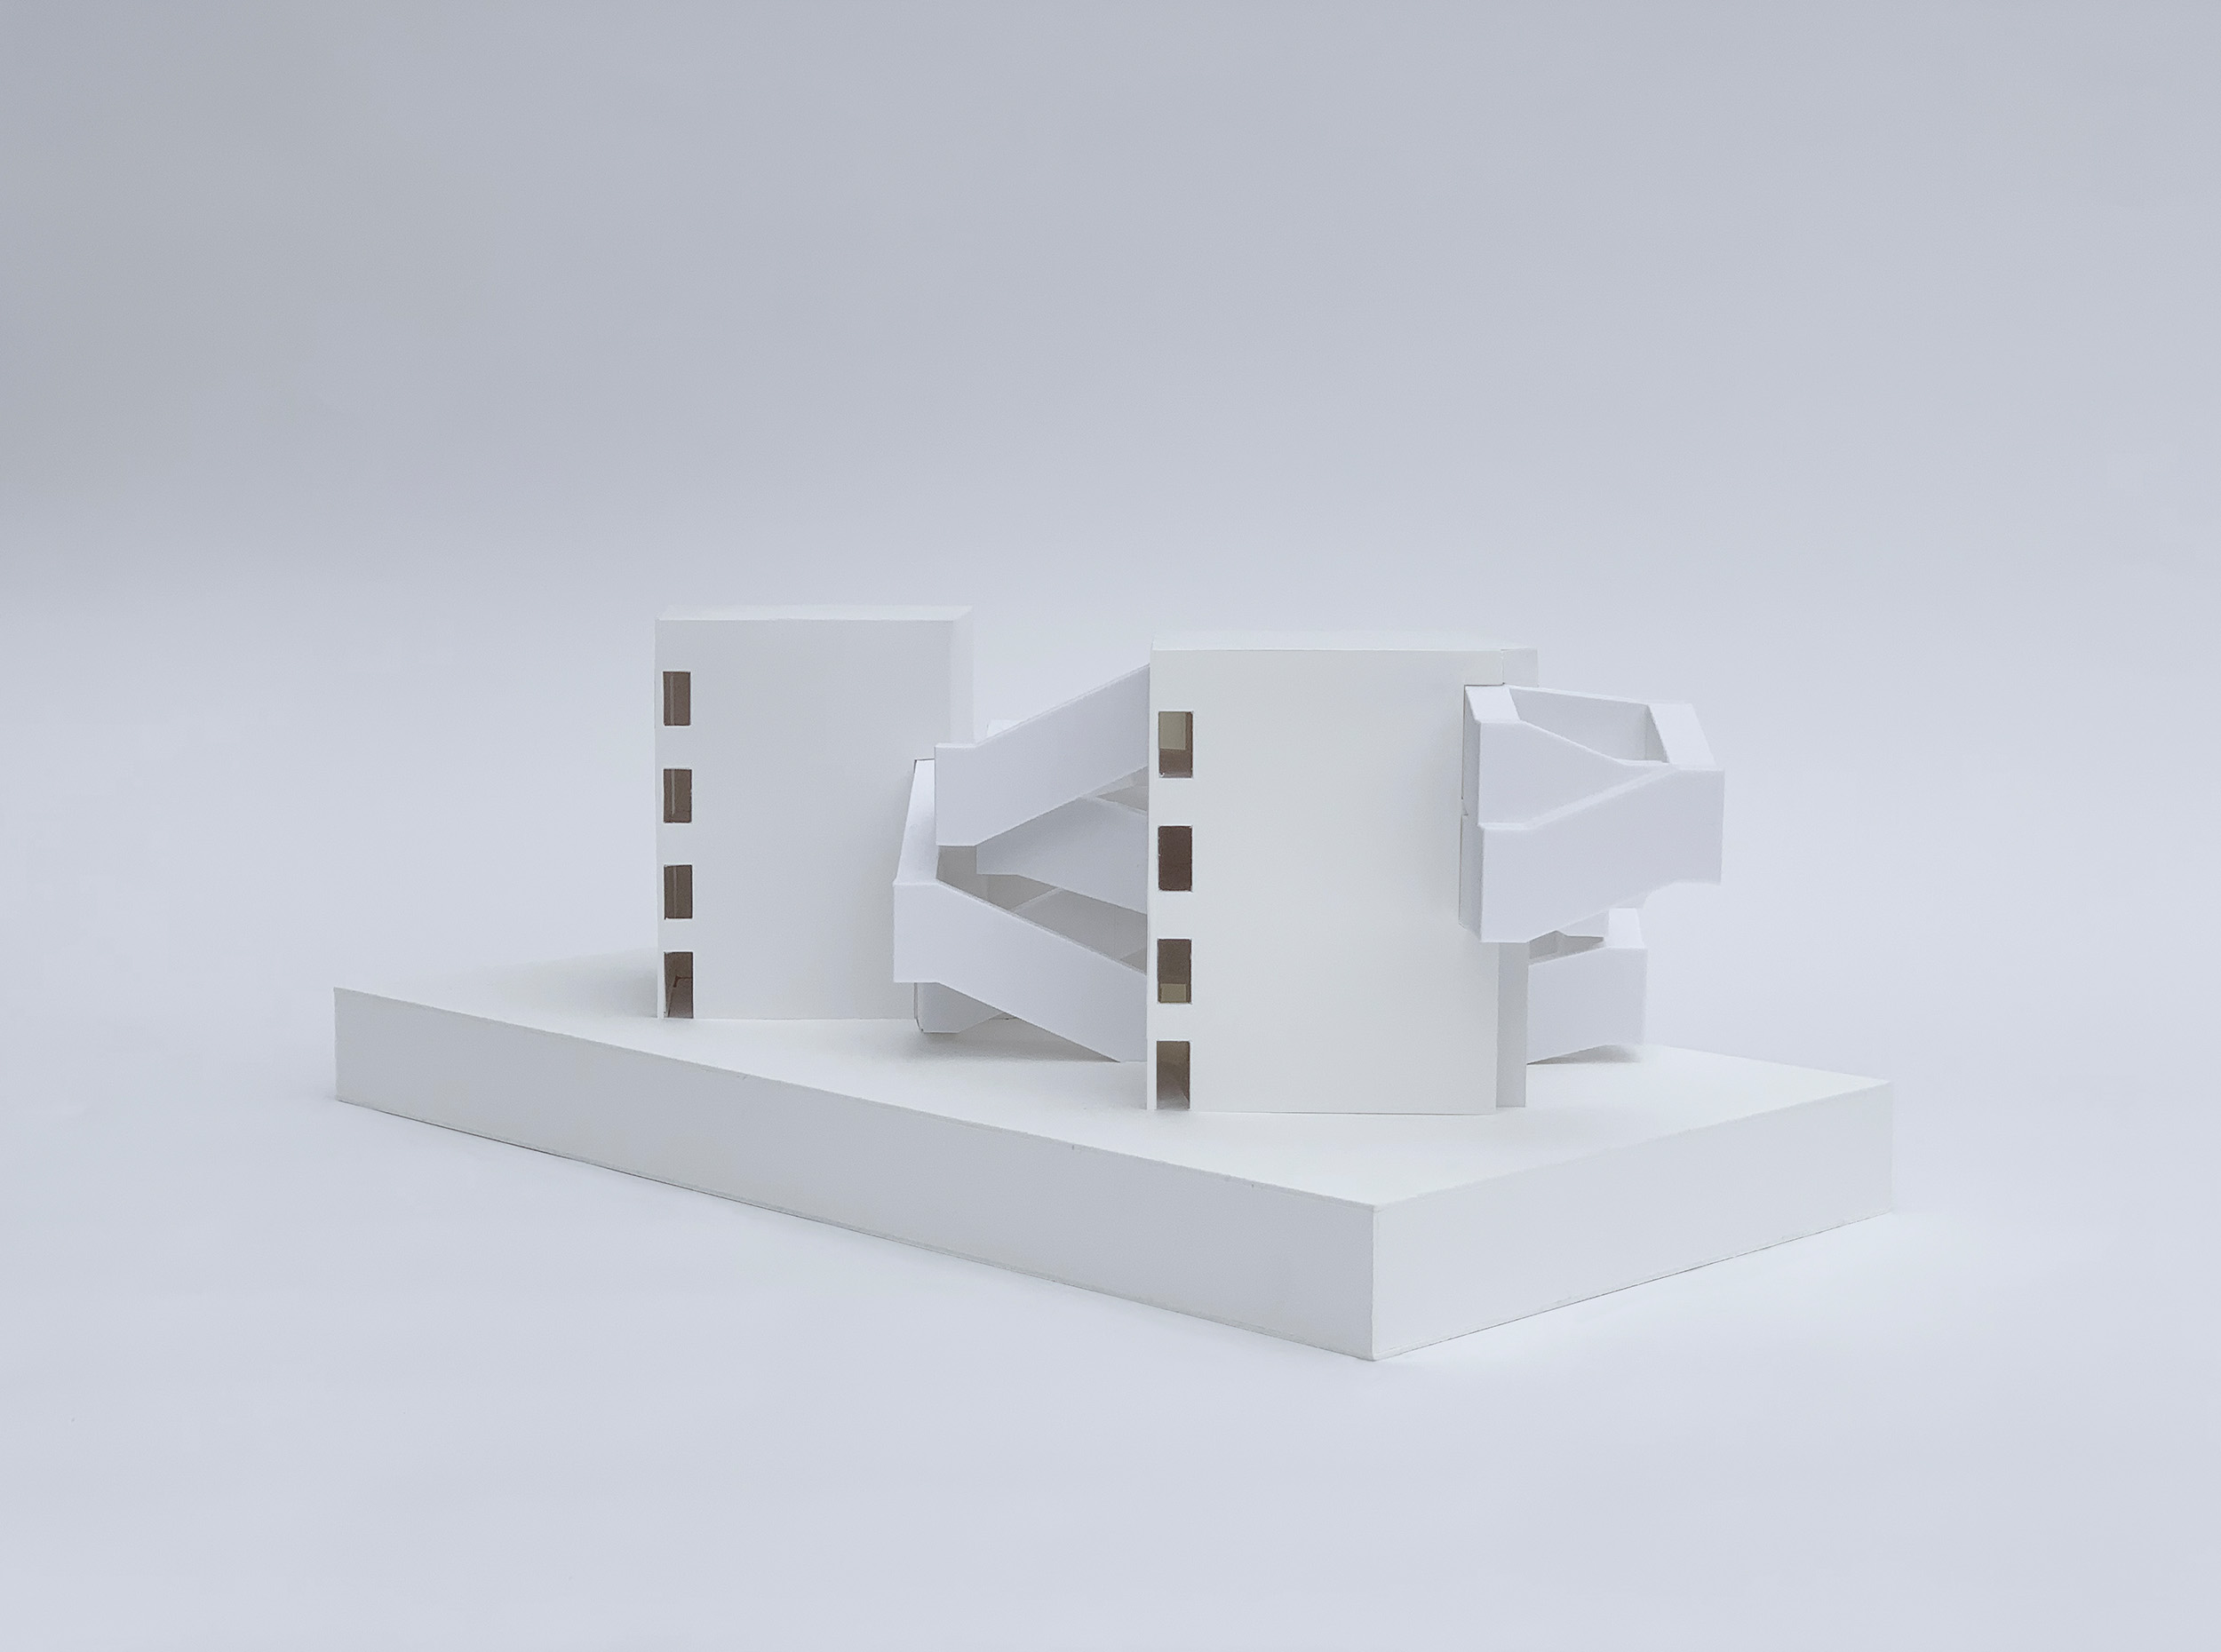 Image of model from corner